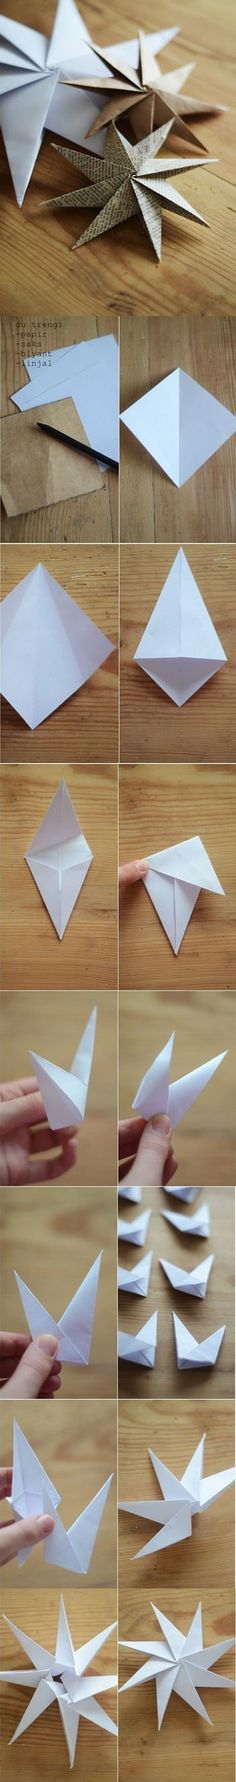 Considering my love of origami this is a must DIY : Paper Star Ornaments Origami Paper, Diy Paper, Paper Crafting, Diy Origami, Dollar Origami, Diy And Crafts, Crafts For Kids, Arts And Crafts, Foam Crafts